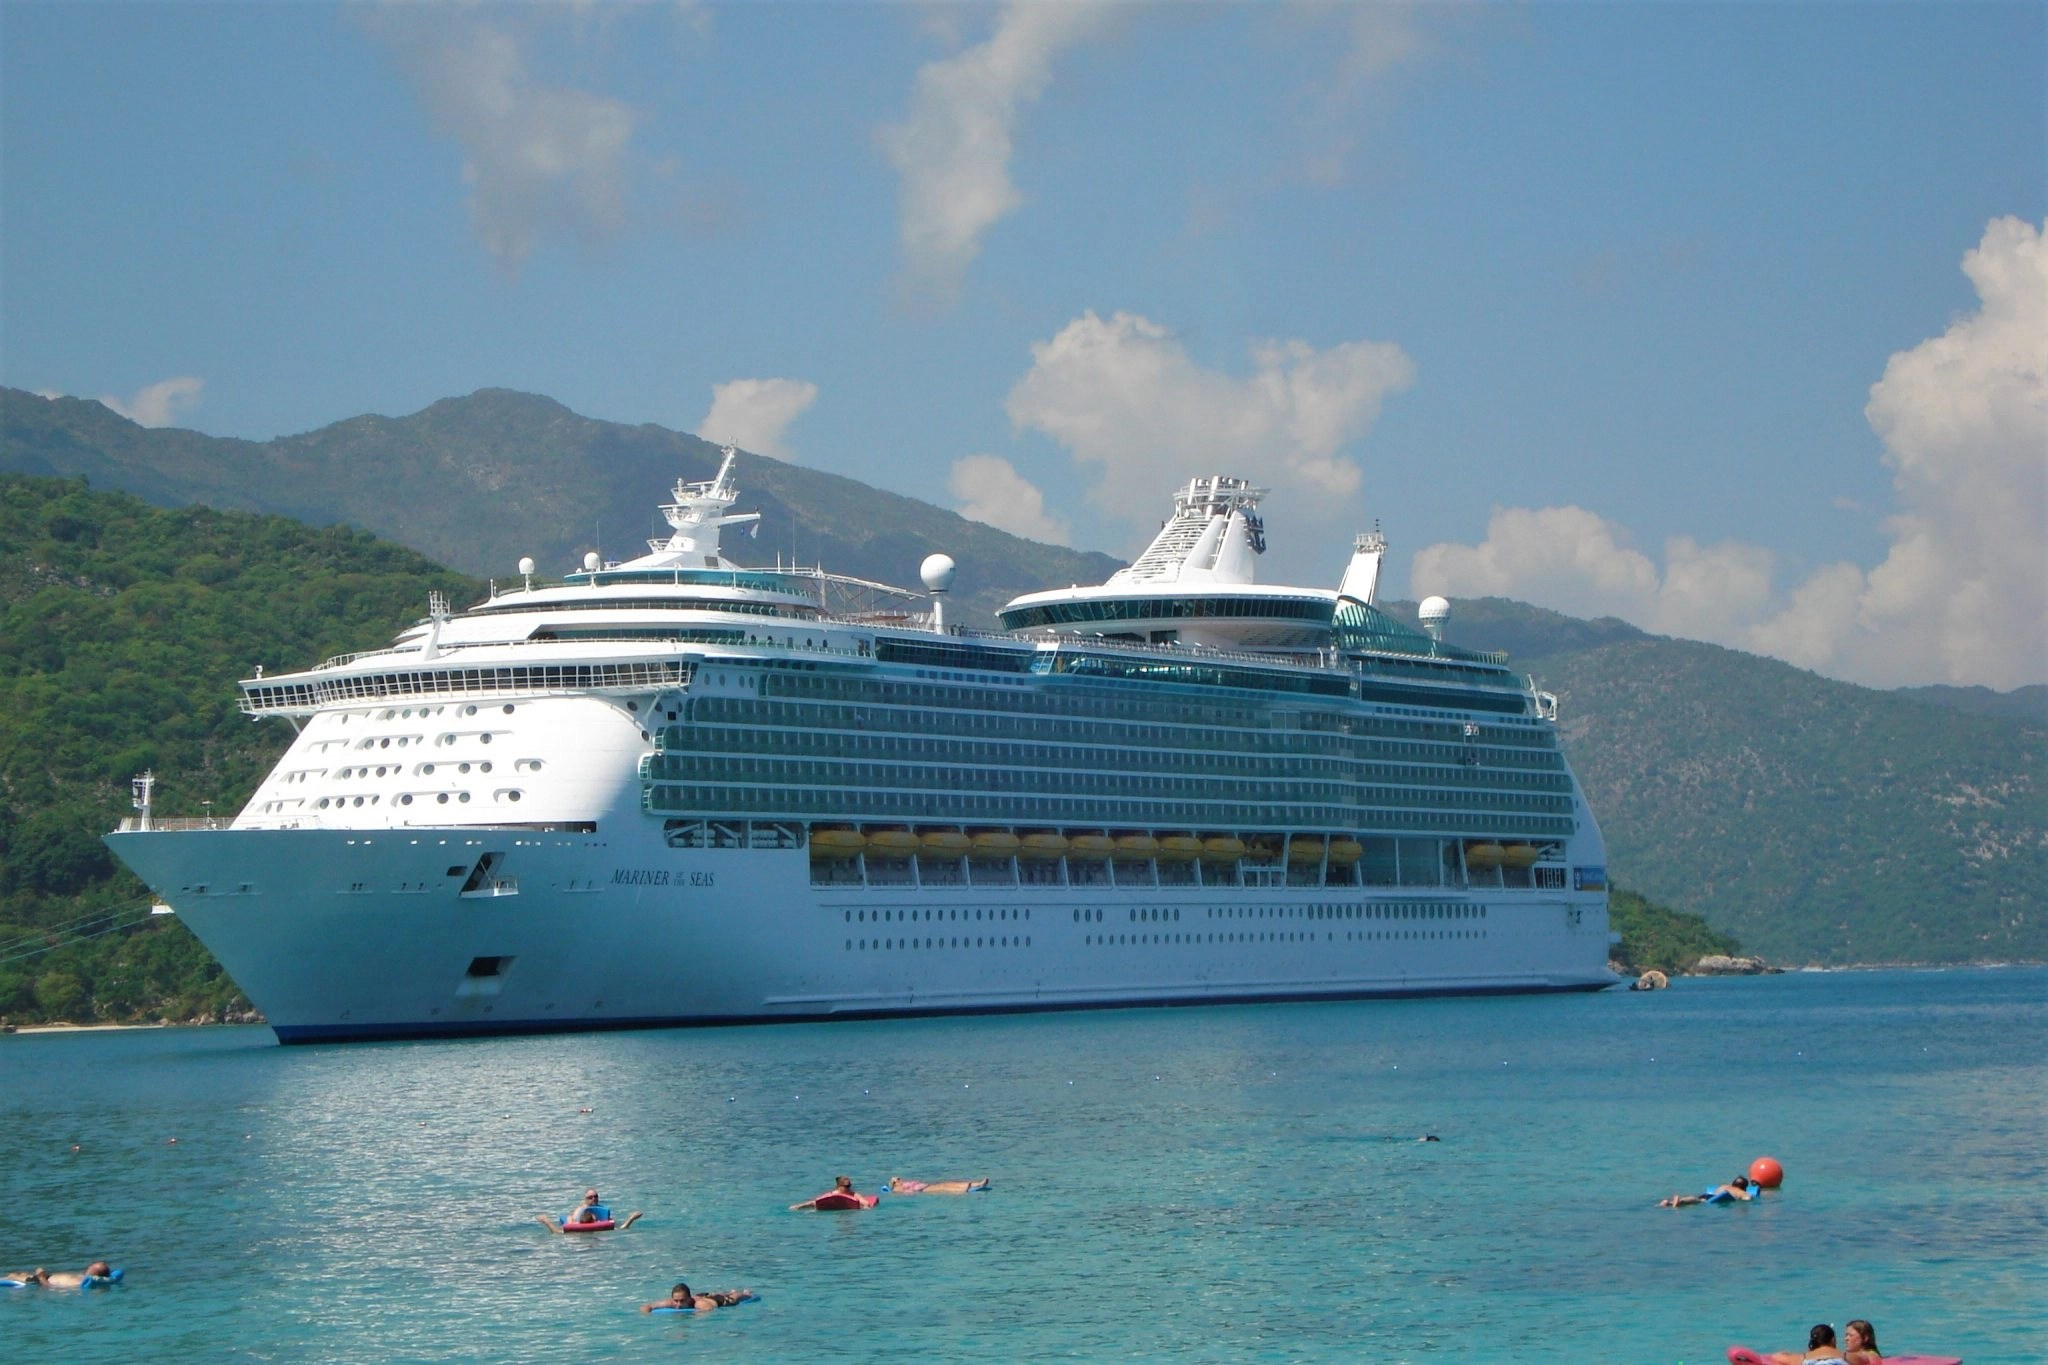 Royal Carribean Mariner of the Seas docked in Haiti